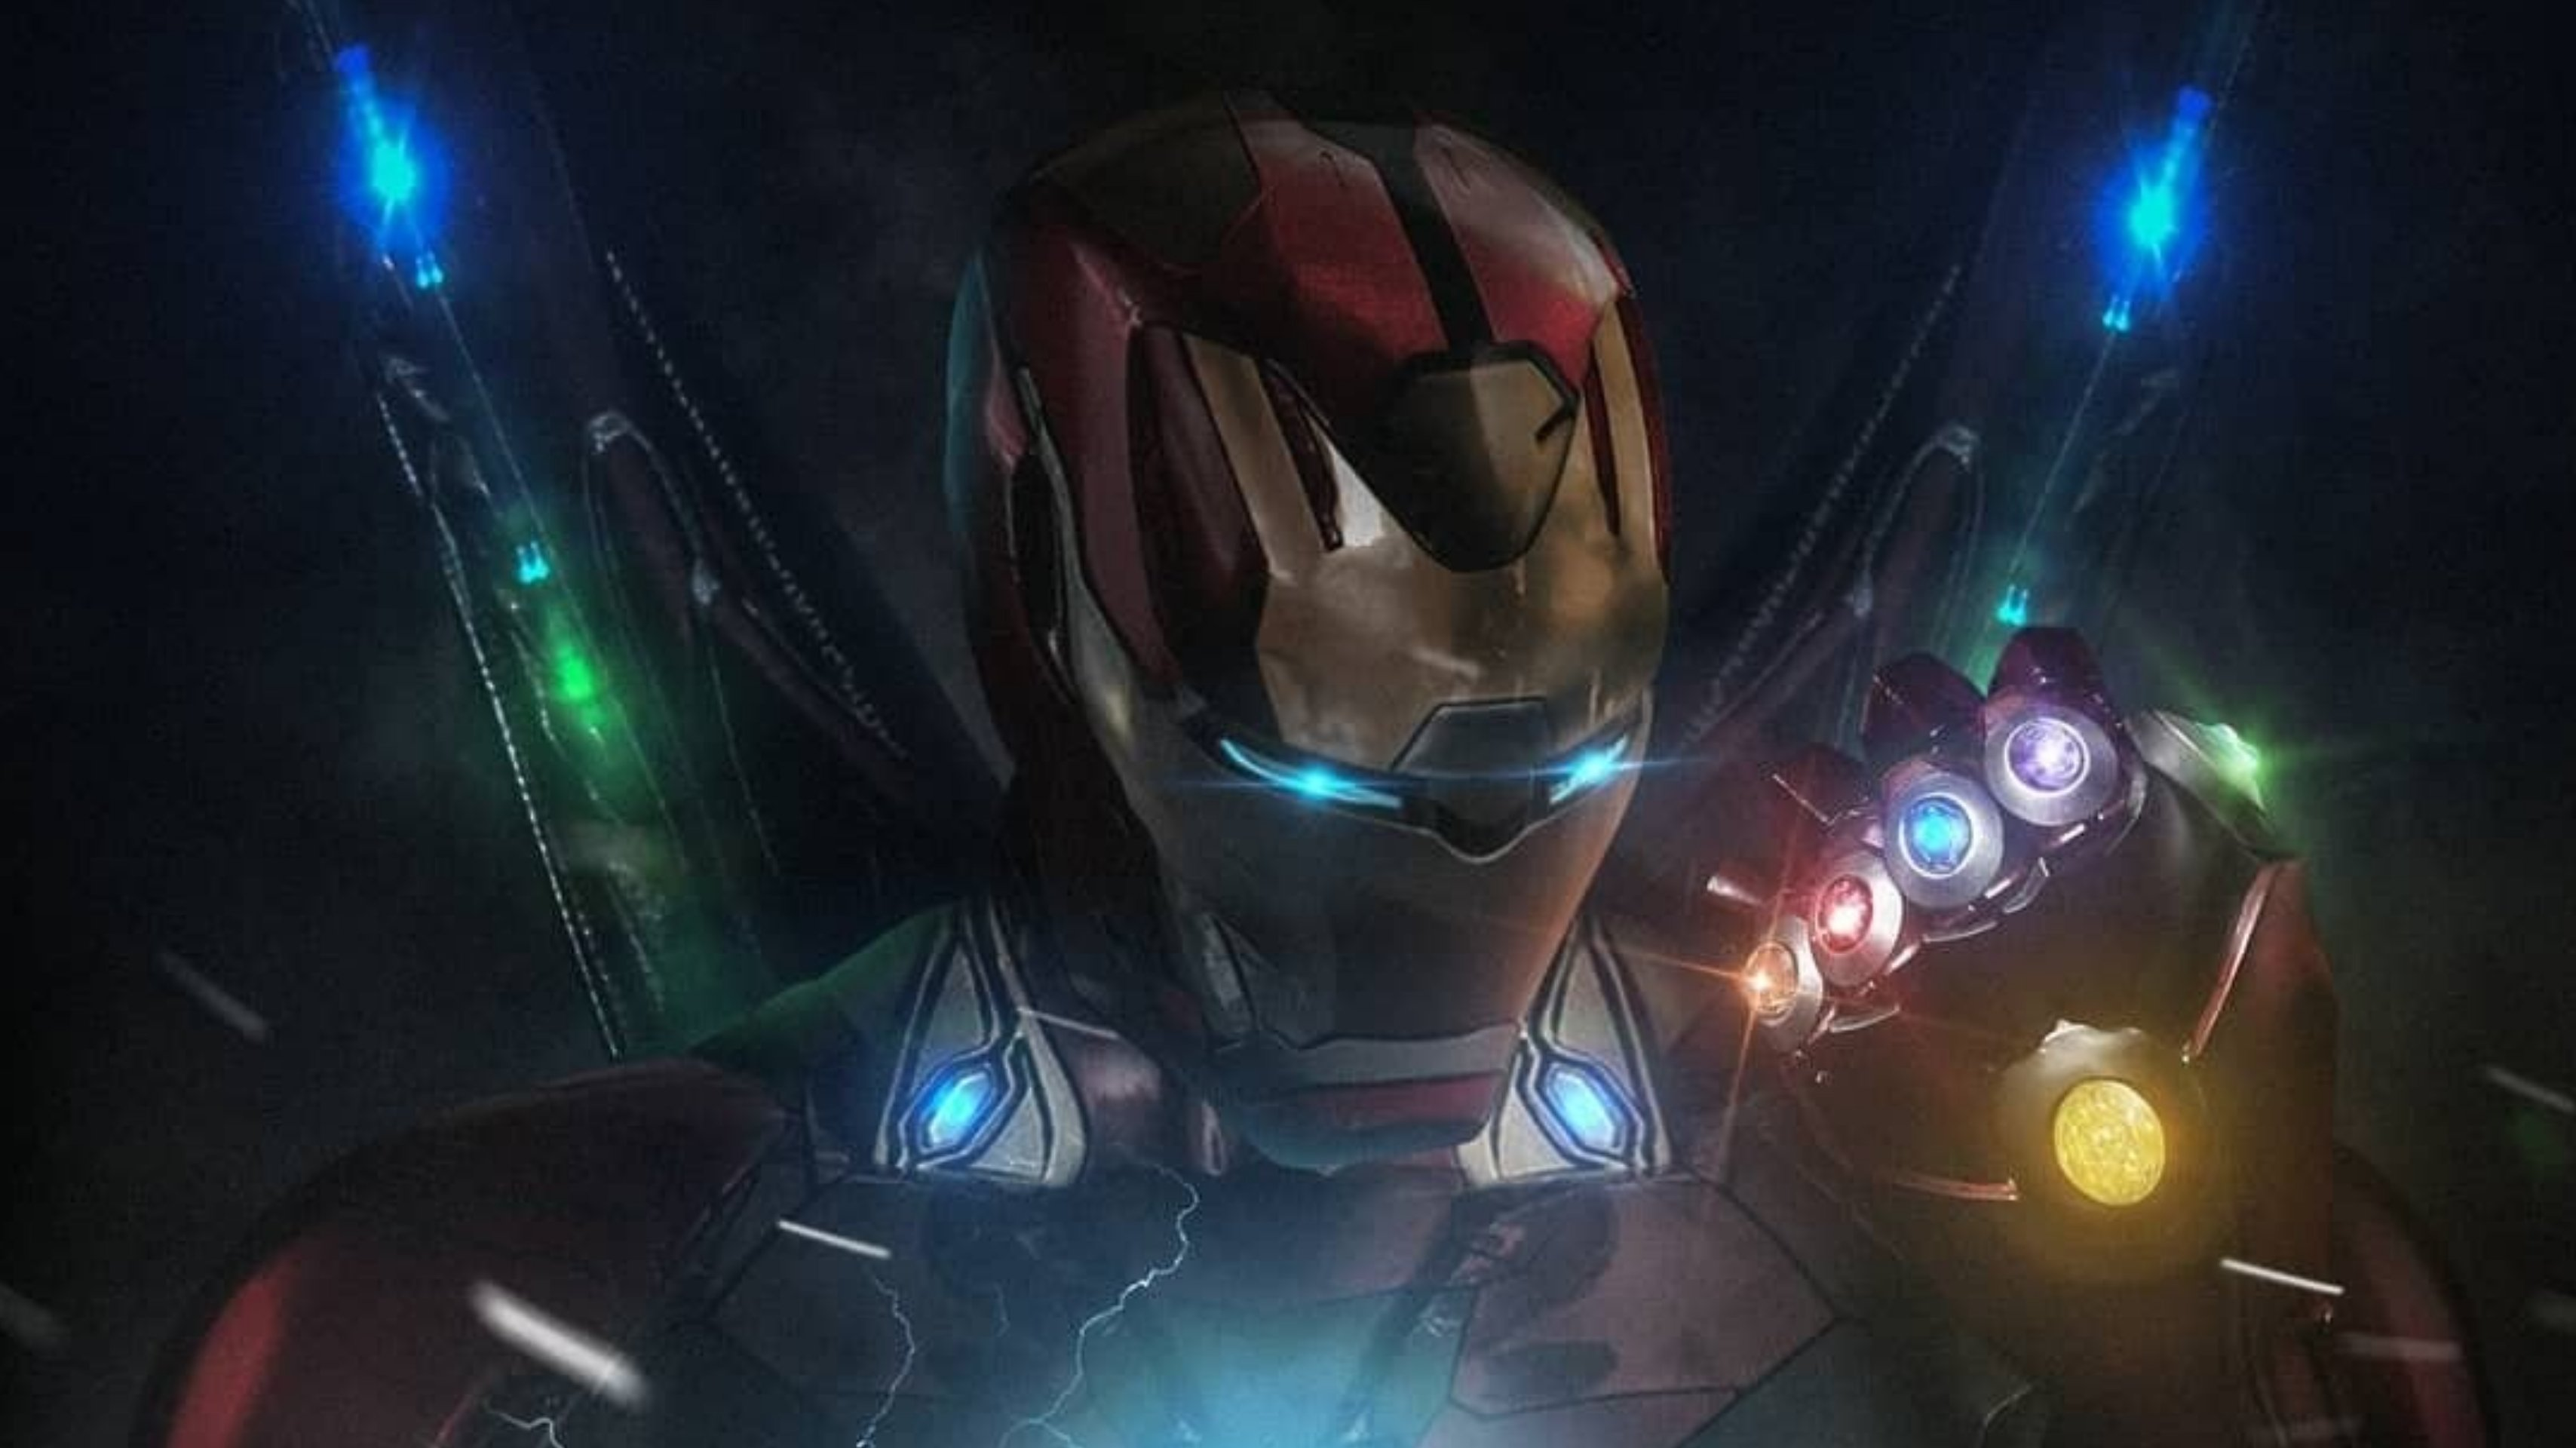 Iron Man Avengers Endgame wallpaper